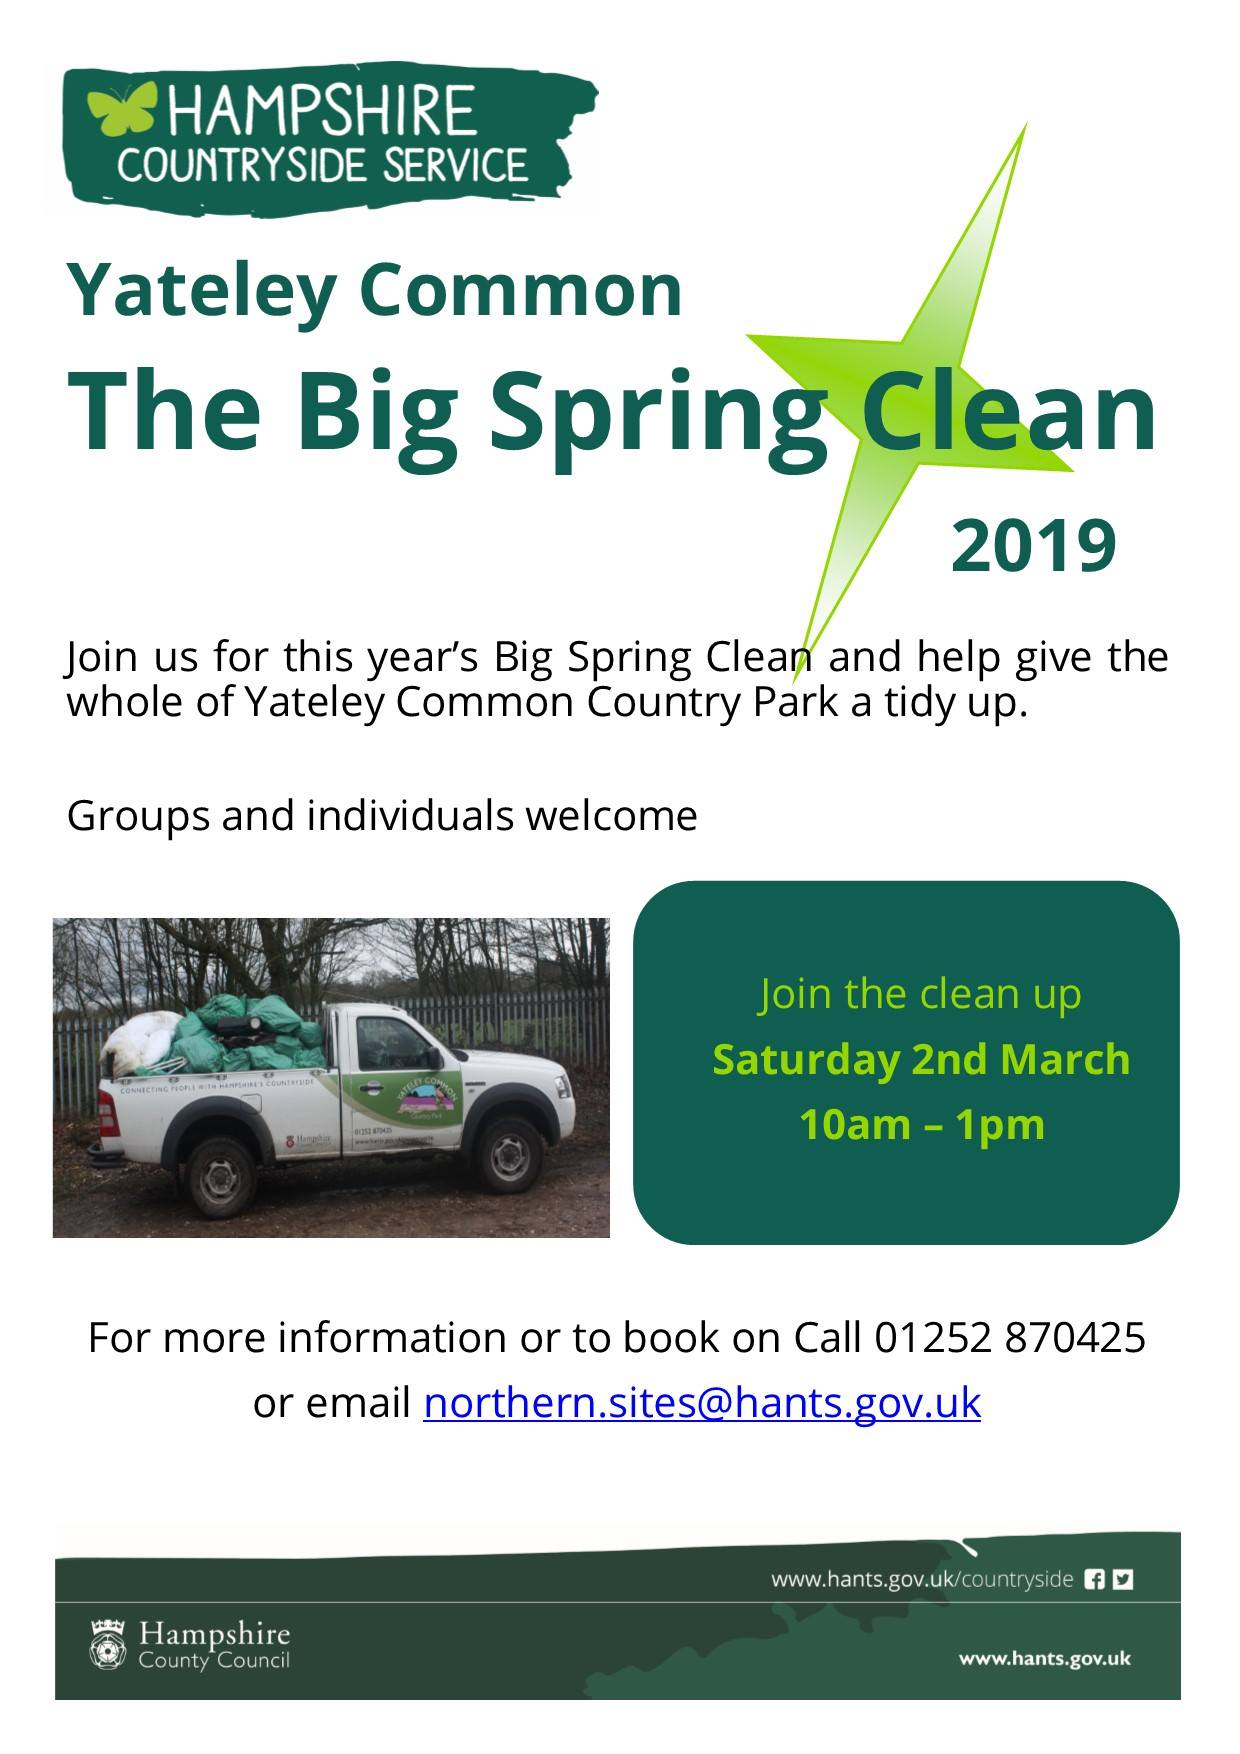 Yateley Common Big Spring Clean